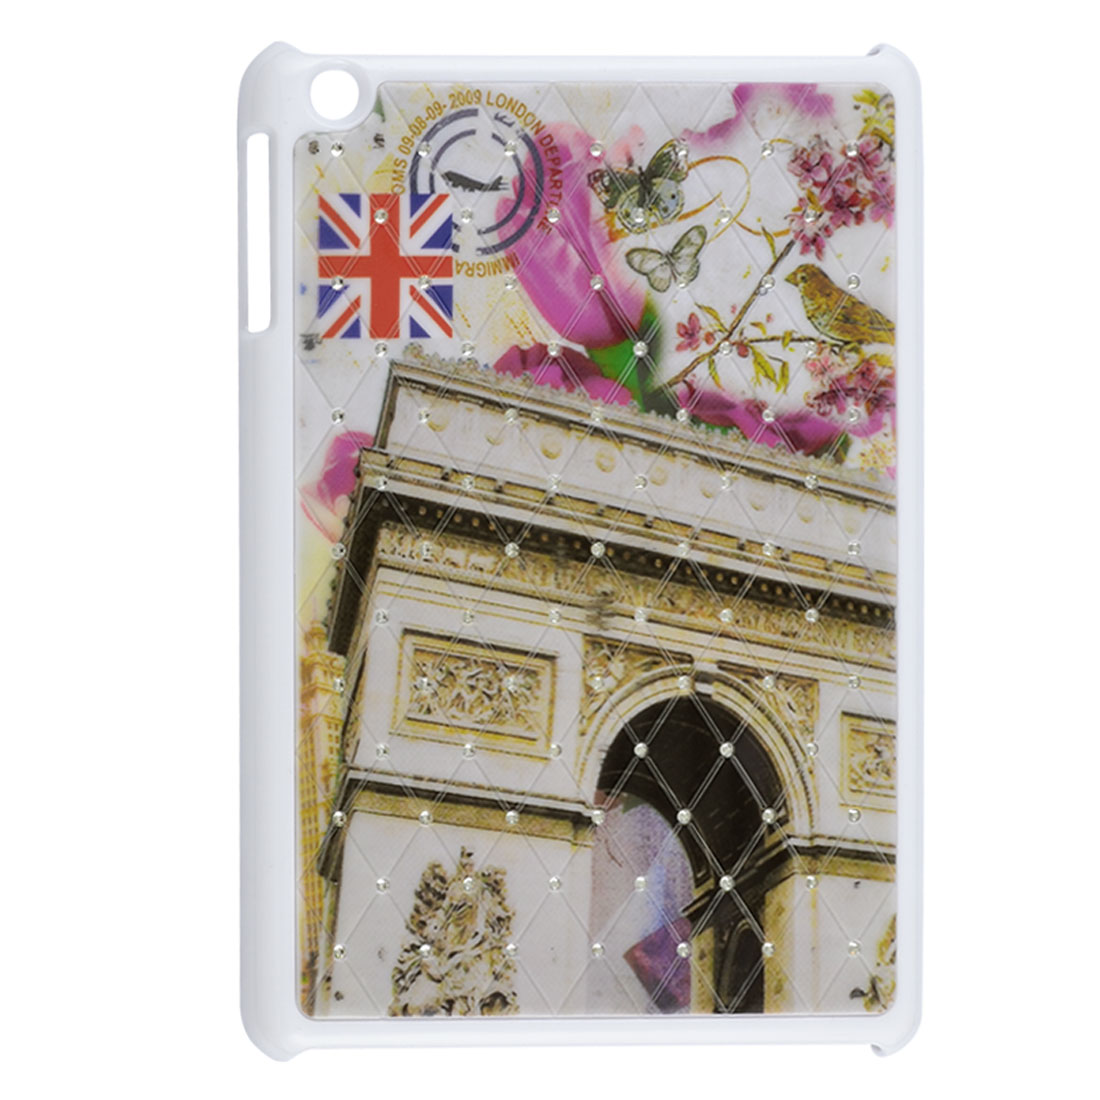 Triumphal Arch British Flag Flower Rhinestone Beige White Hard Back Case for iPad Mini